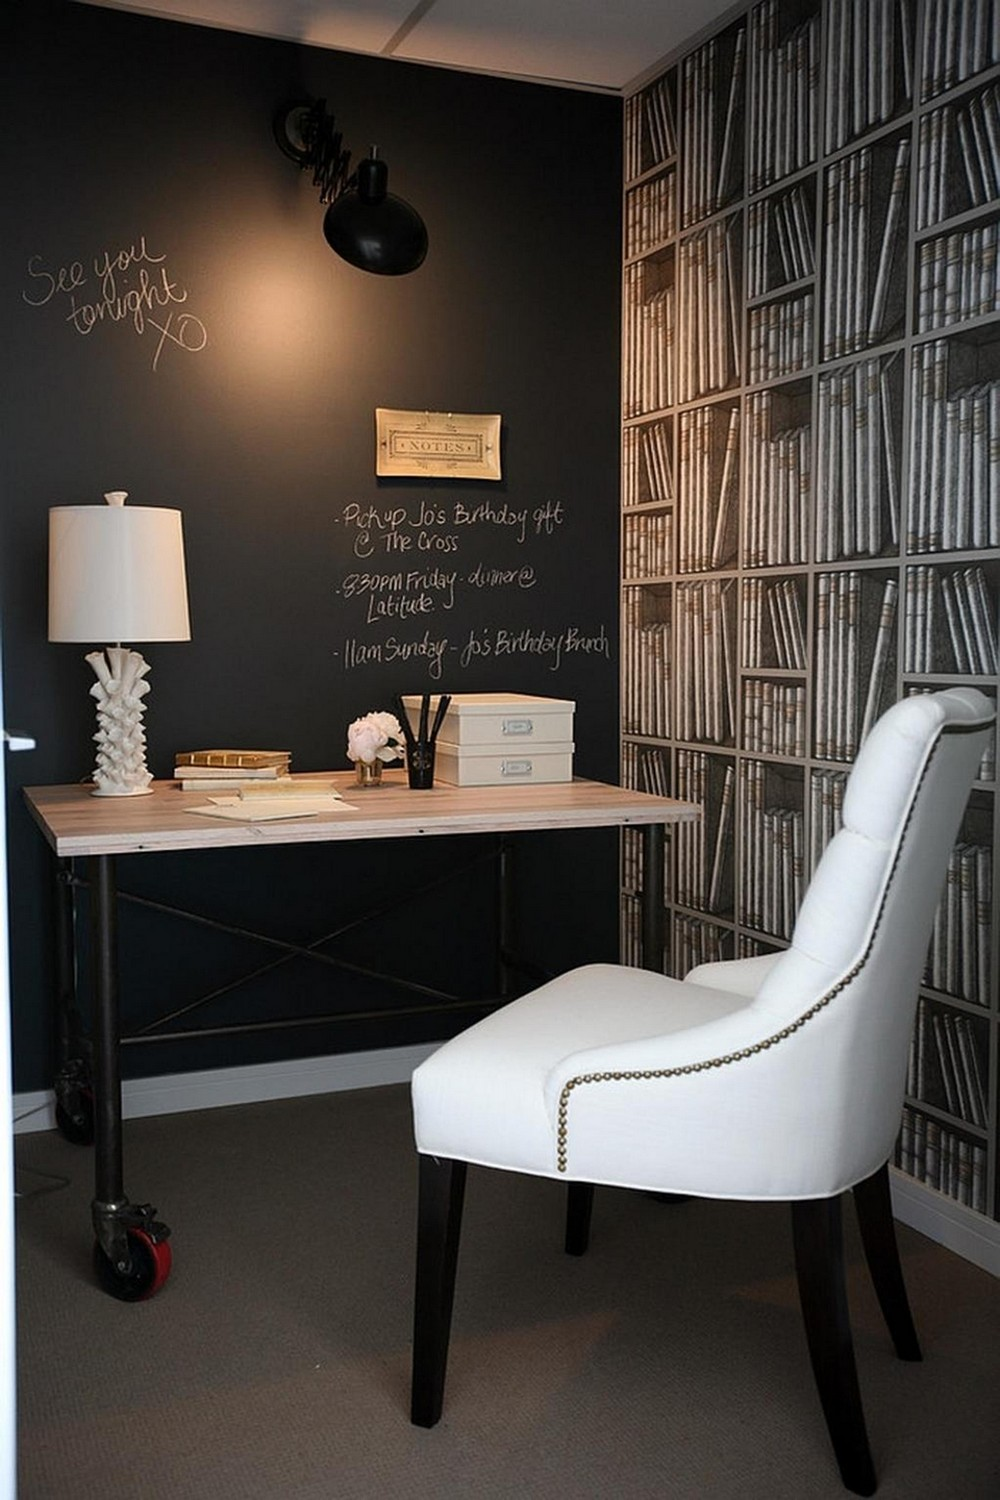 18 Awe-Inspiring Home Office Designs full of Colors and Textures 15